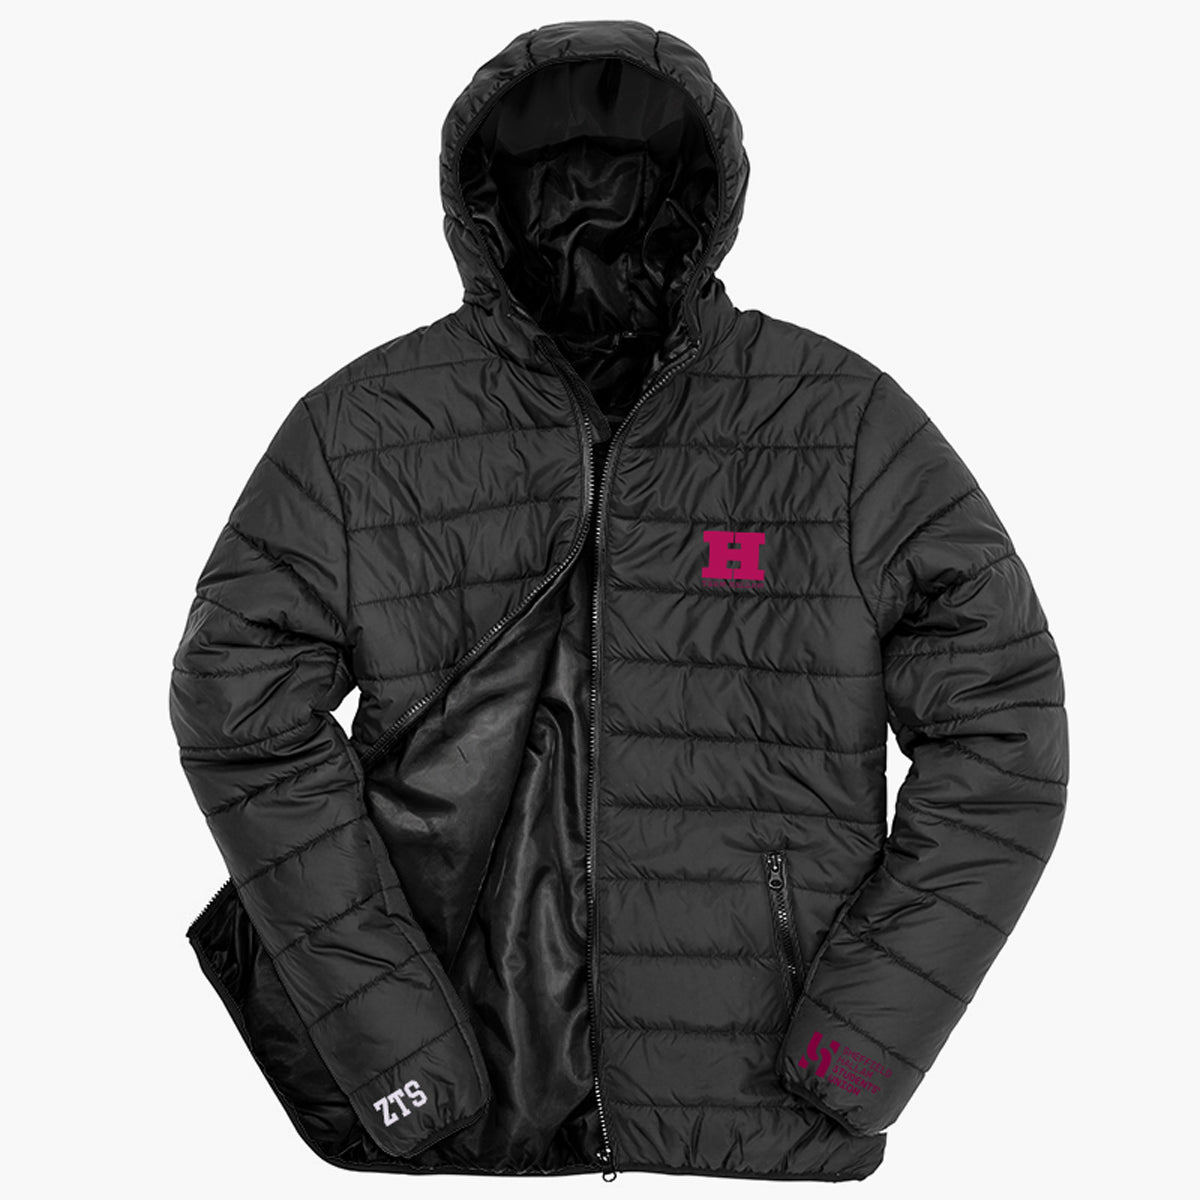 Team Hallam Padded Jacket